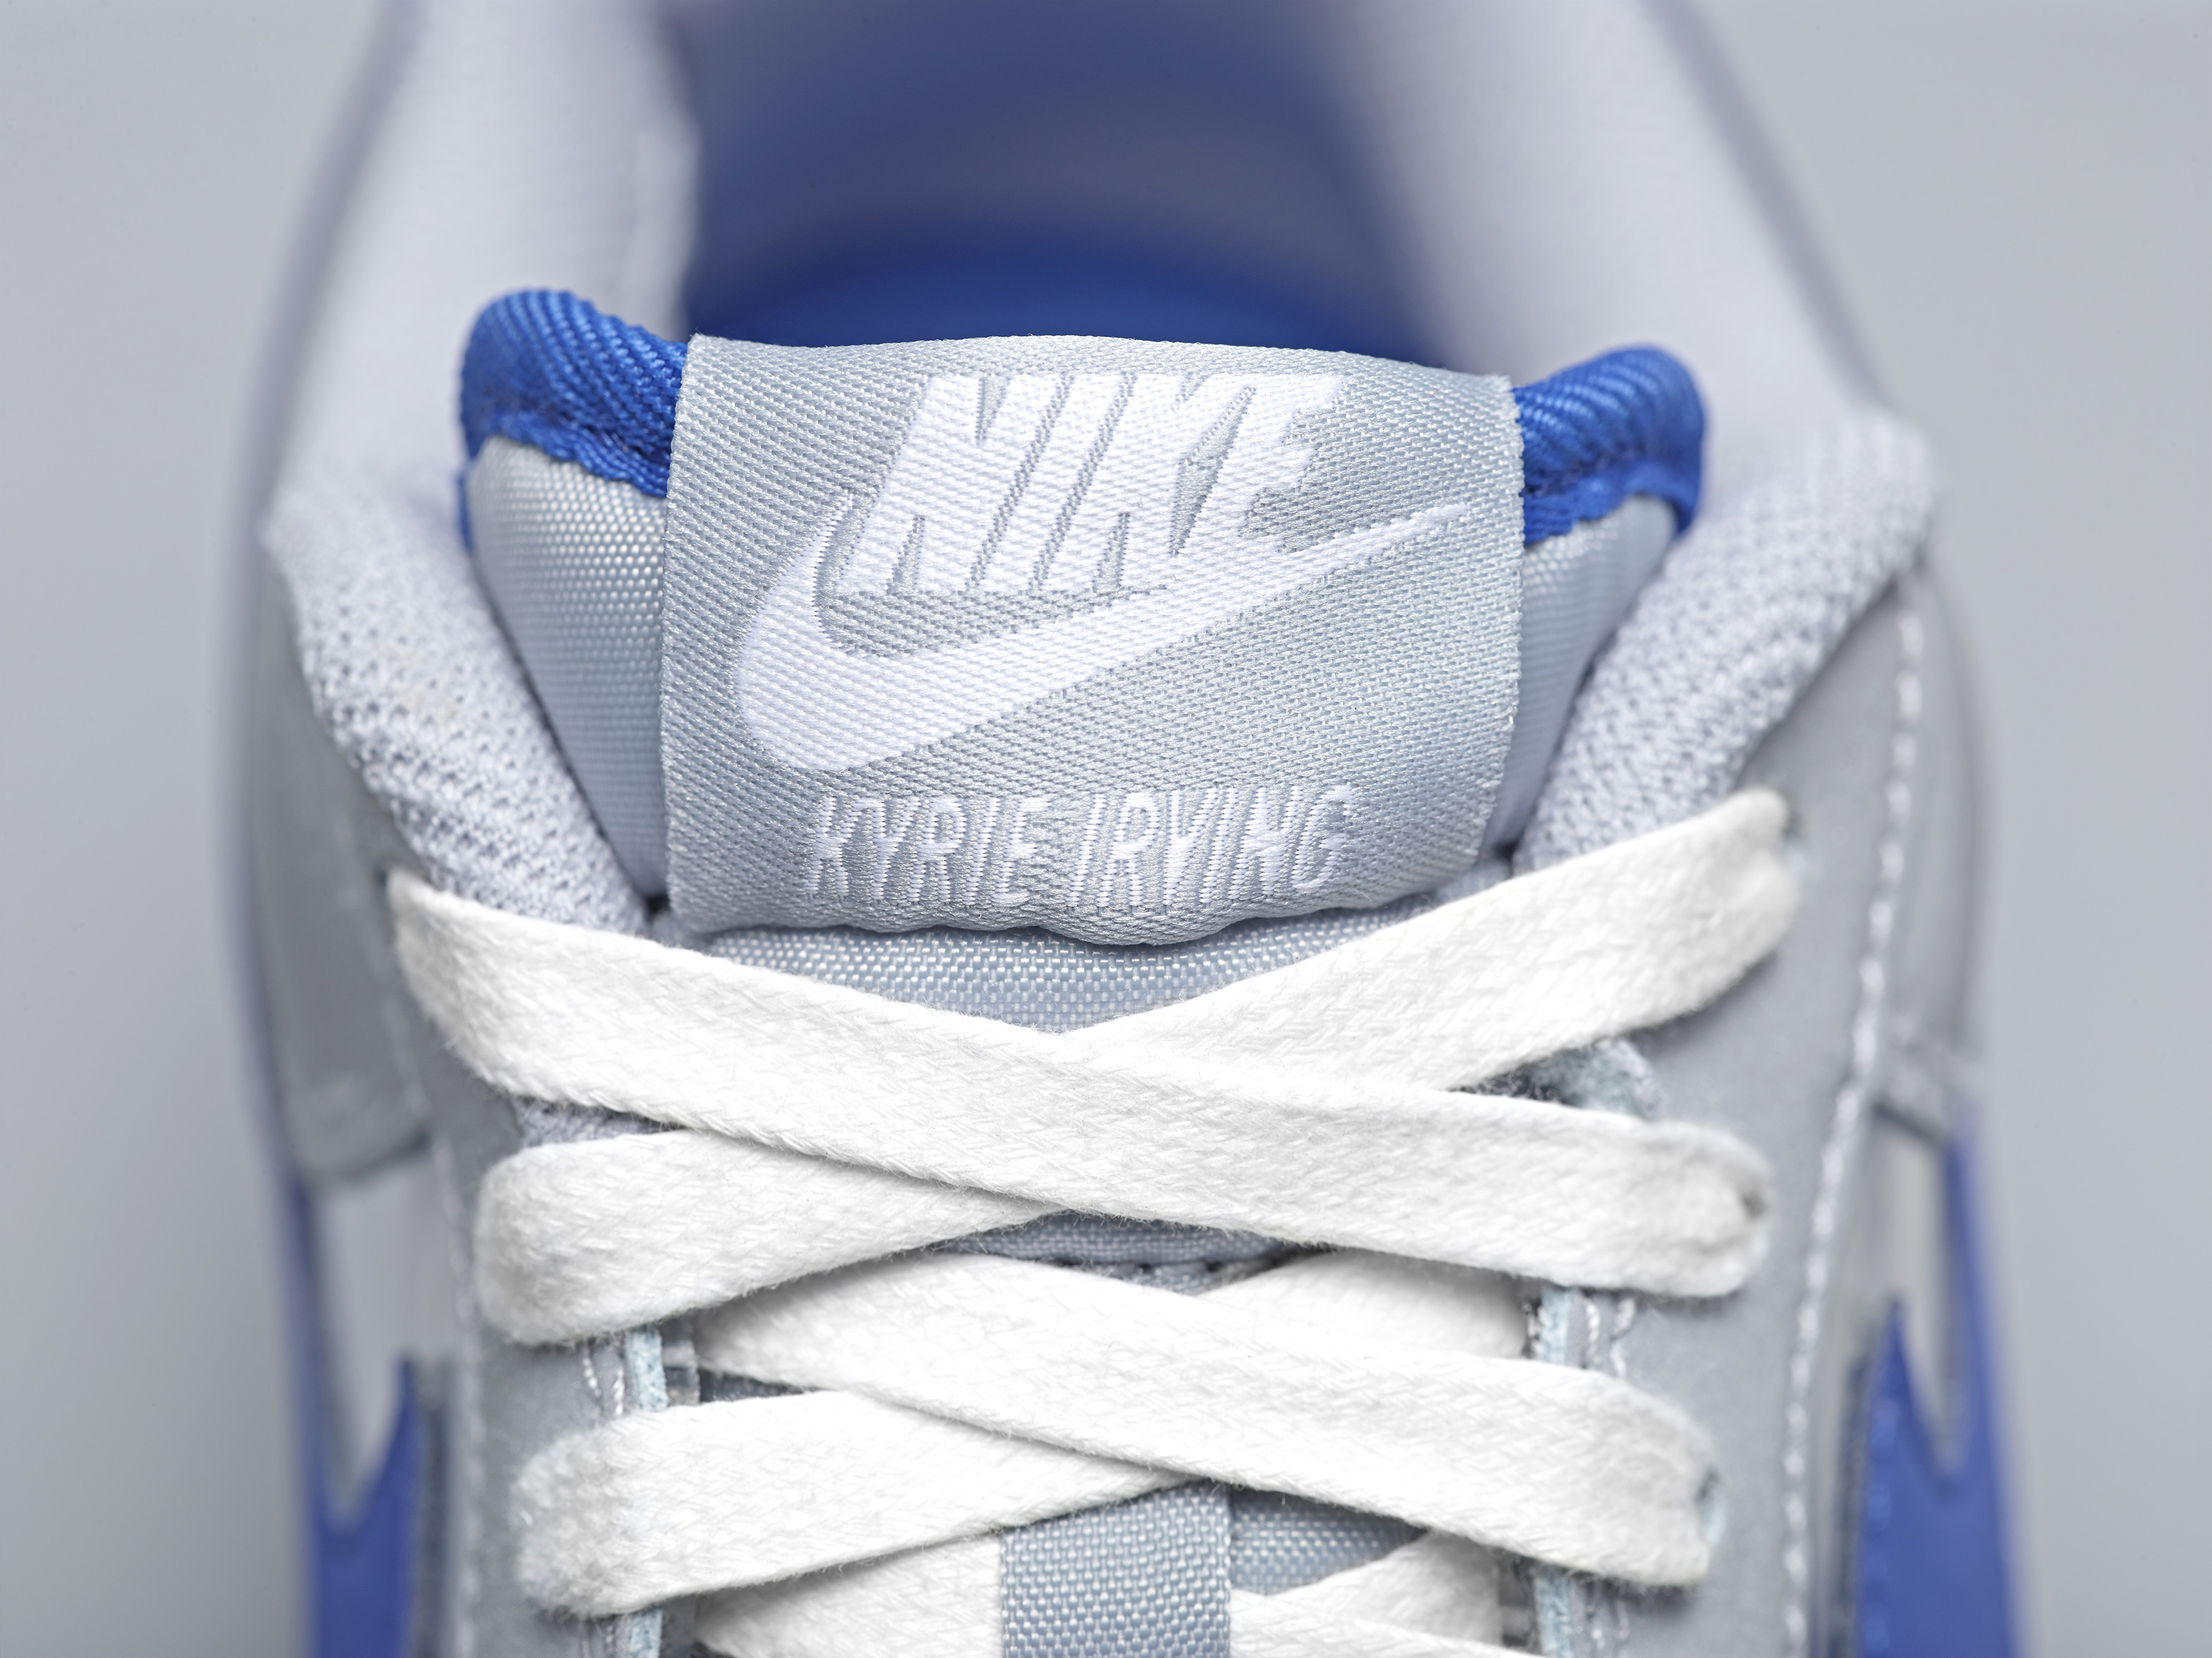 kyie irving nike air force 1 mid womens white